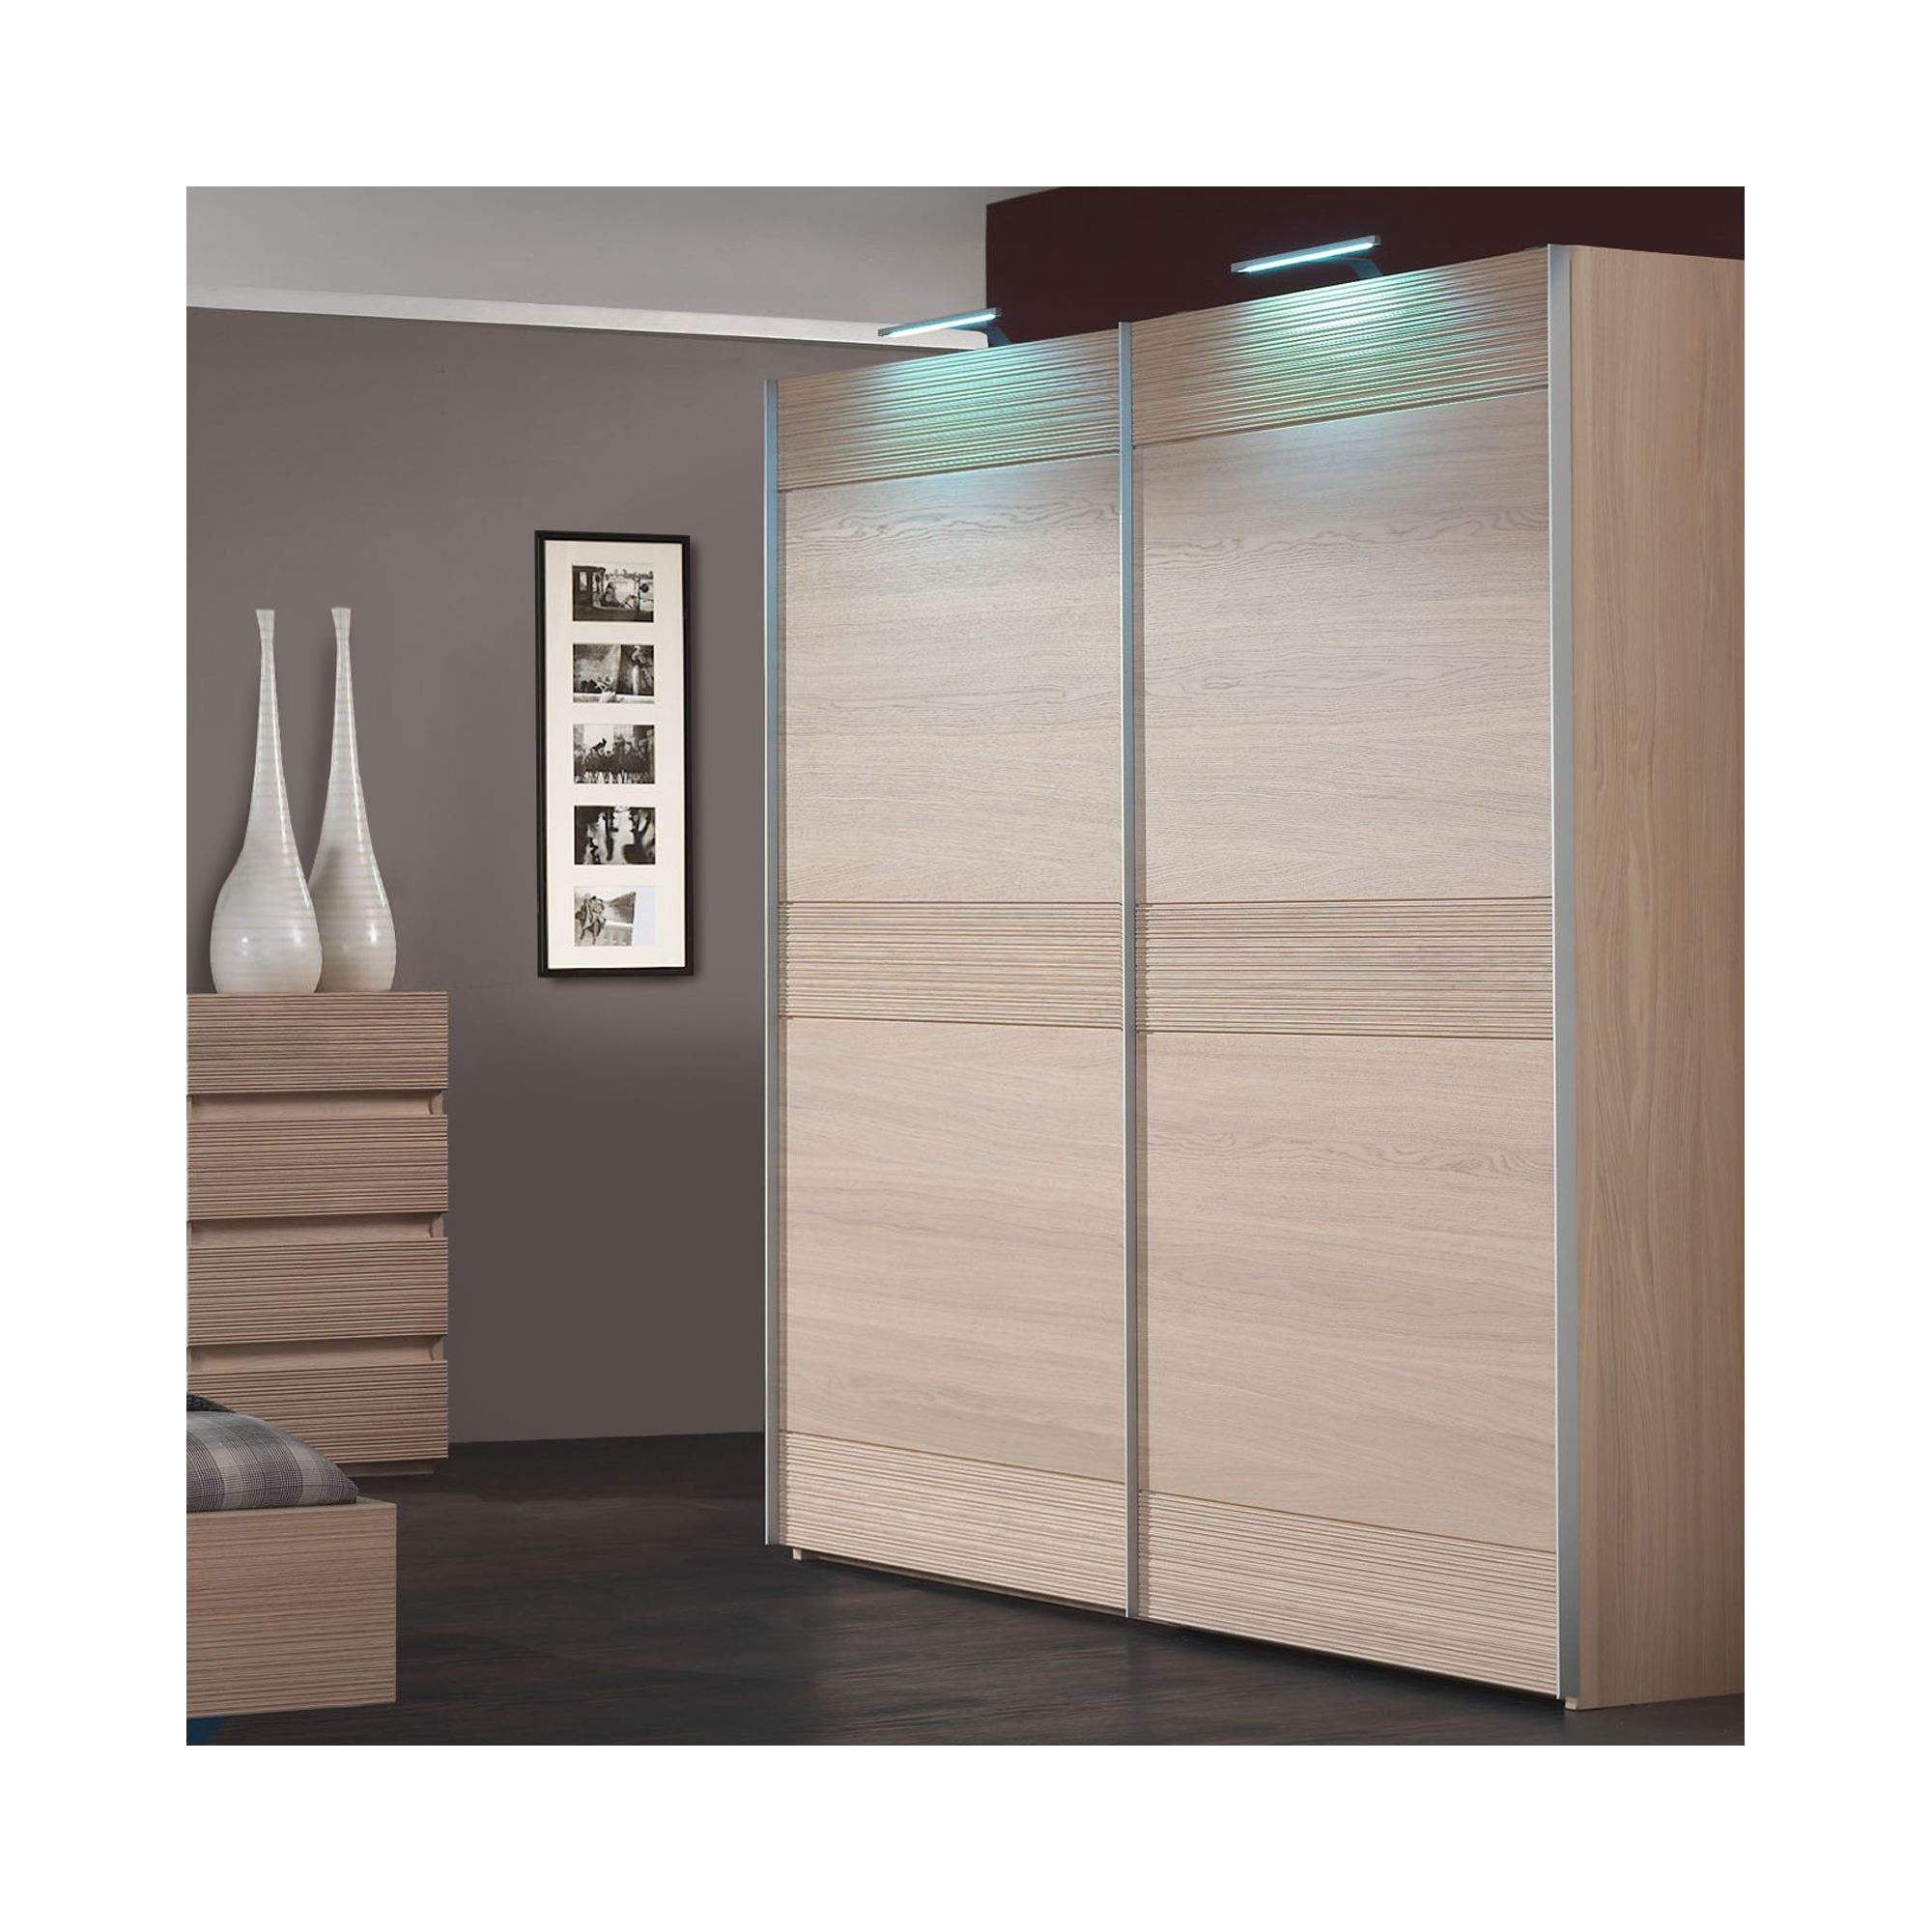 Sleepline Diva Wardrobe with 4 Shelves - 229cm - Grey Mat Lacquered - With Mirror at Tesco Direct